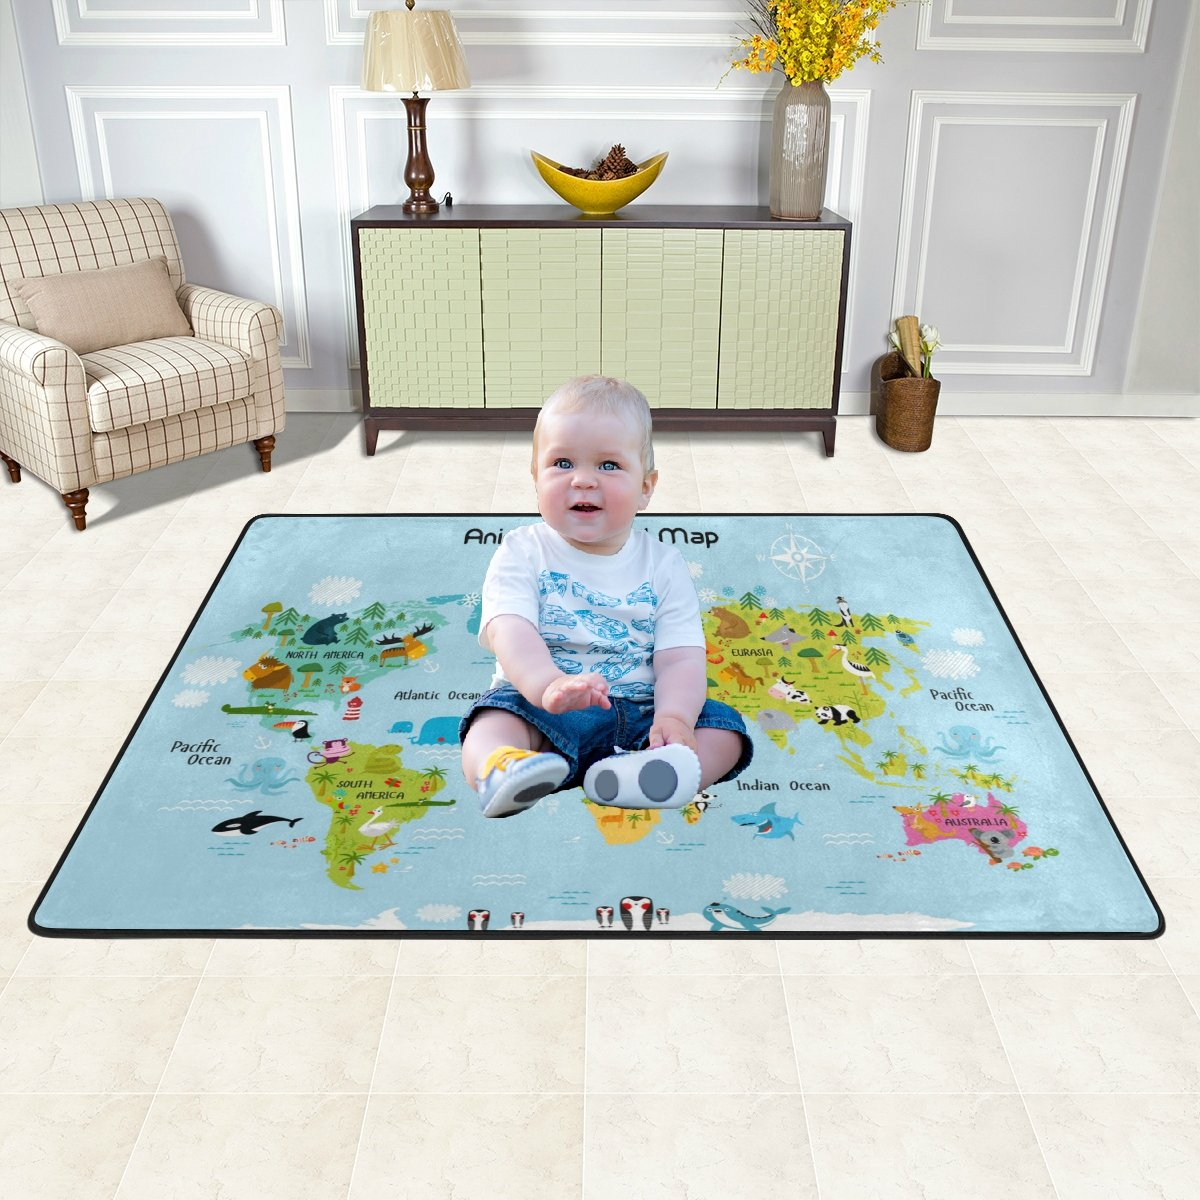 Cartoon Animals World Map Area Rug for Kids Educational Carpets Soft Non-Slip Boys Girls Baby Floor Mat for Playroom Bedroom Classroom 4' x 6'